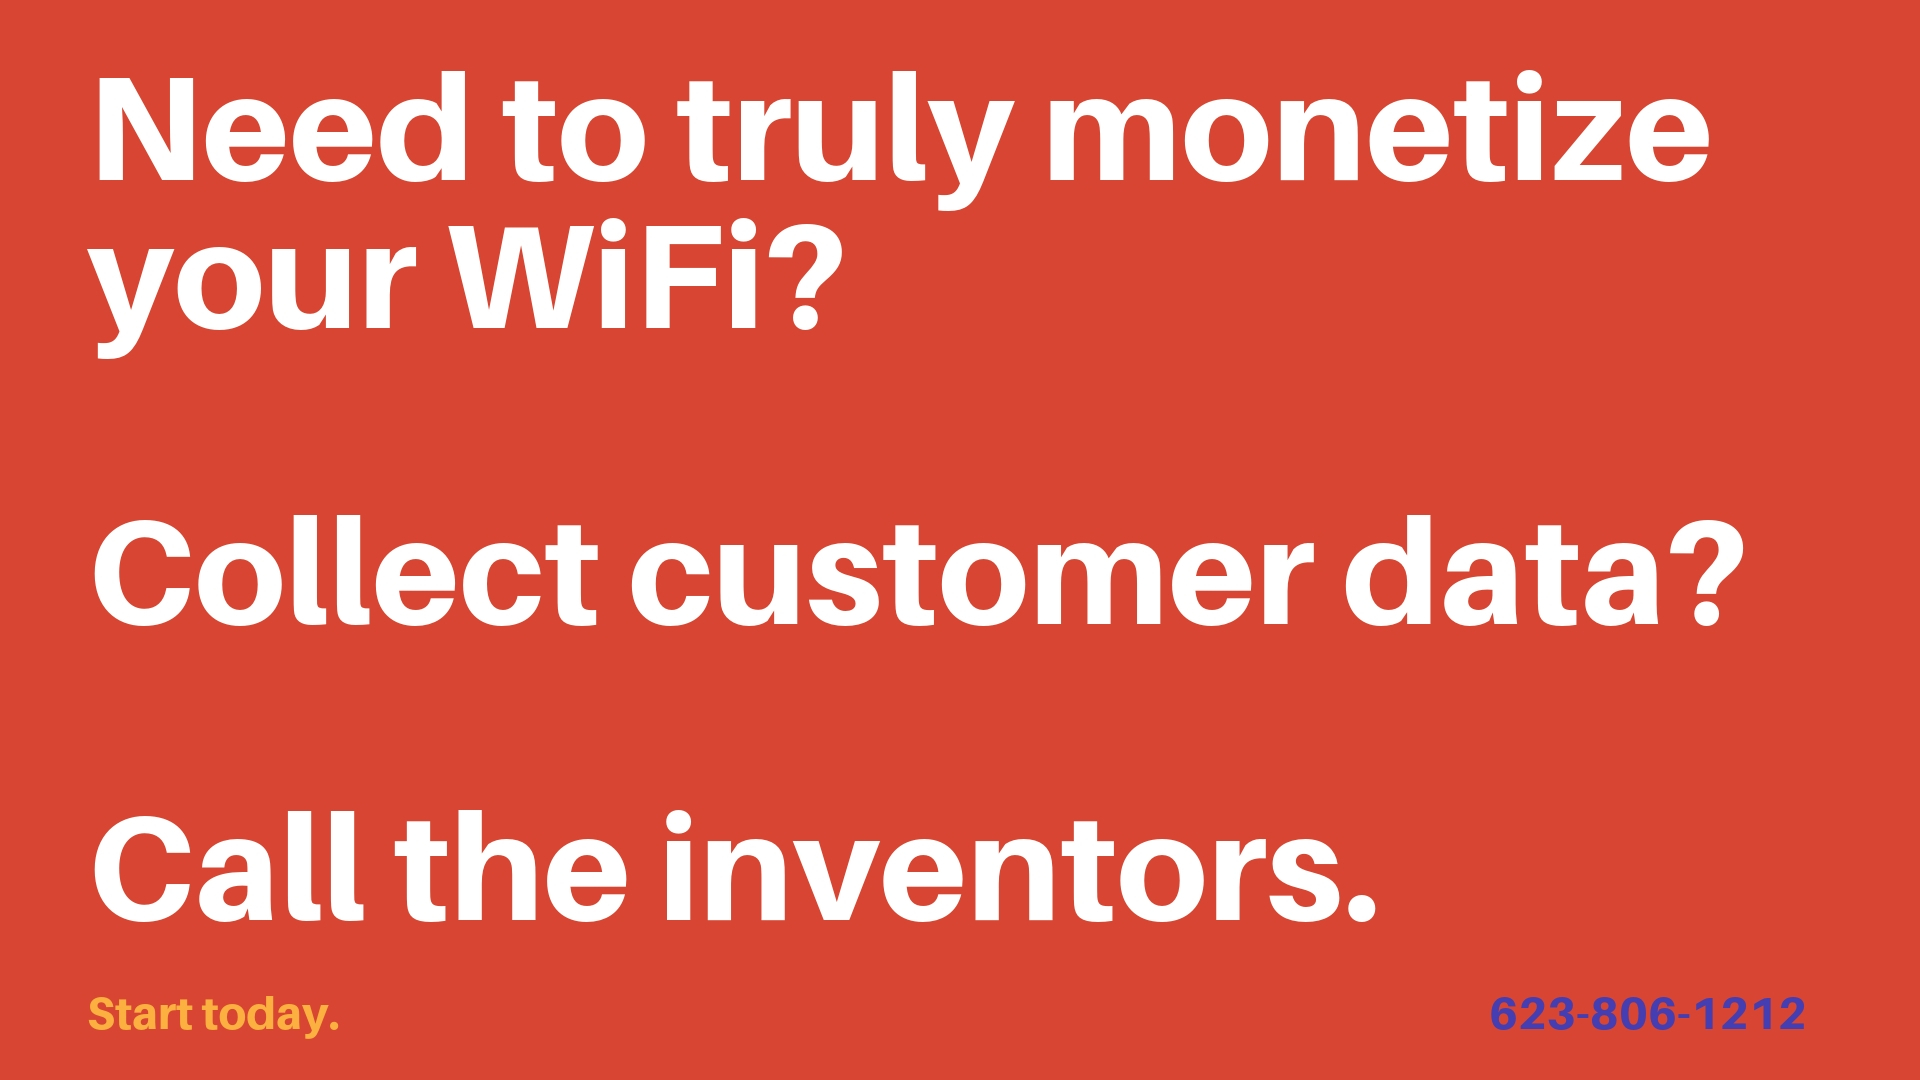 BBT-monetize-wifi